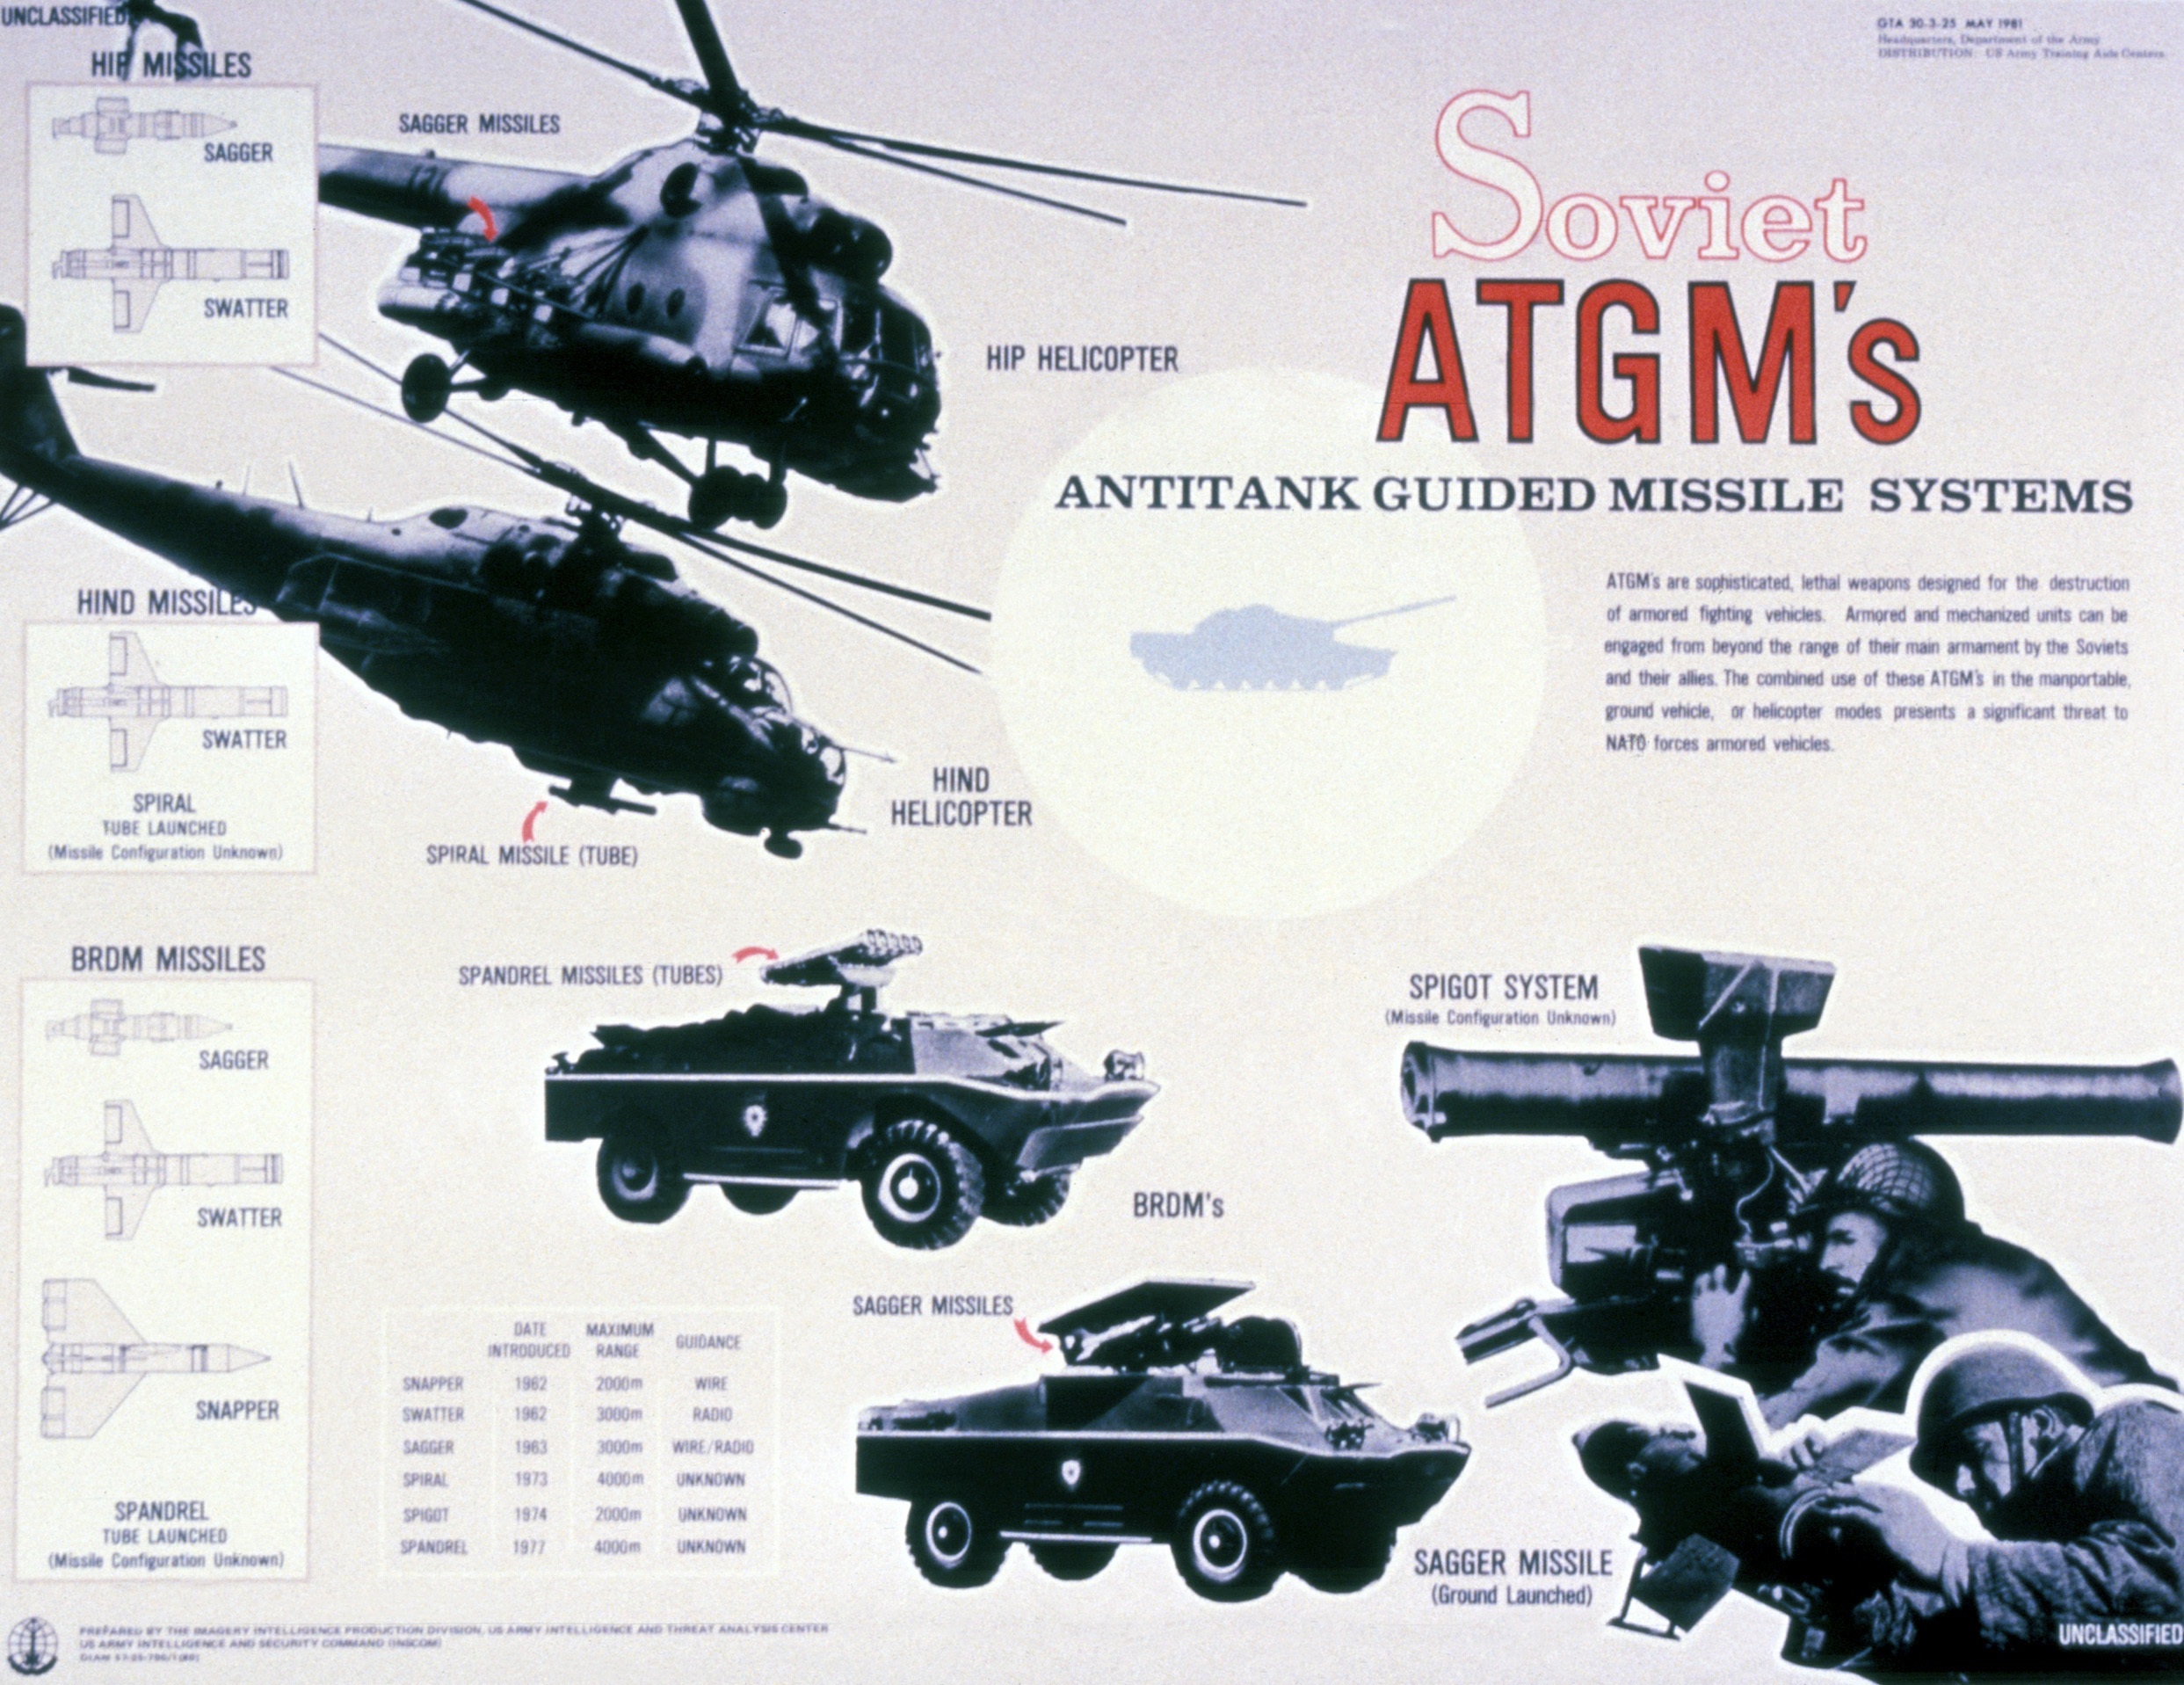 how do helicopters work with File Soviet Atgm's on Dina Powell Leaving Wh Post National Security Aide as well Watch besides Western Linemen Take Air as well 8196511181 moreover Too Much Influence.